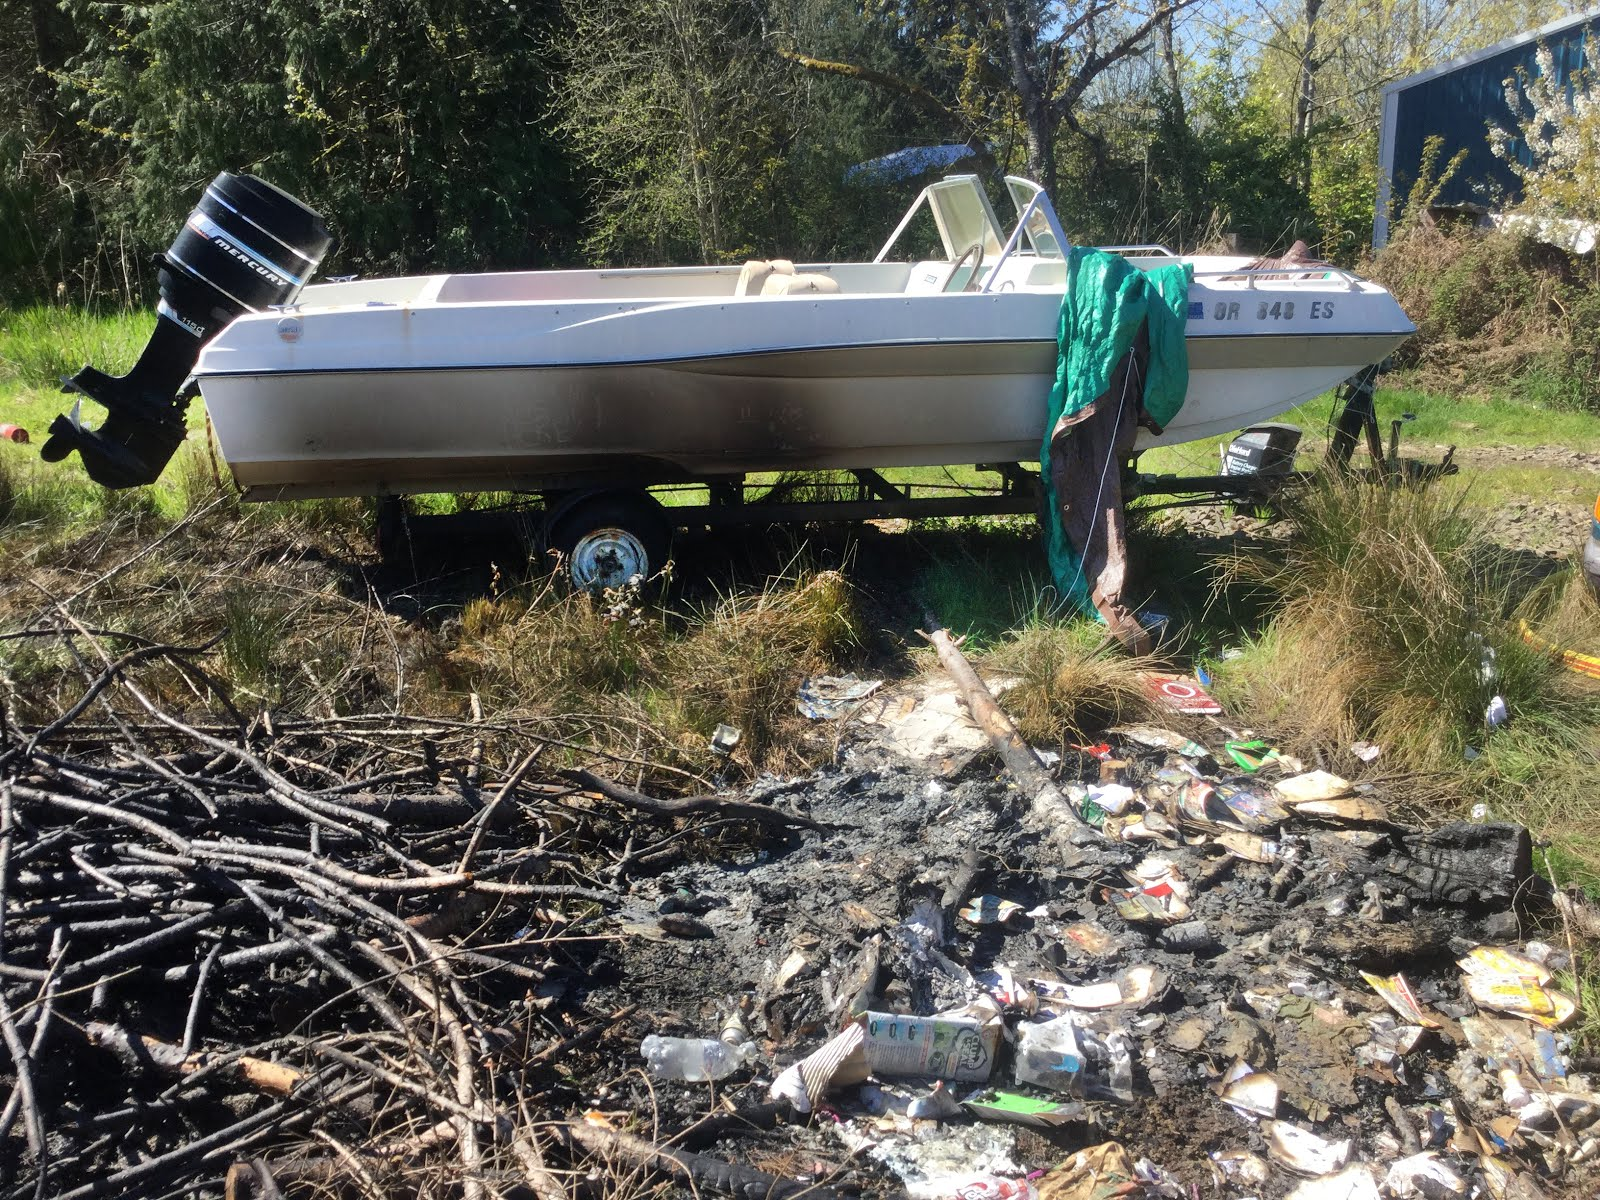 Debris burn damages boat